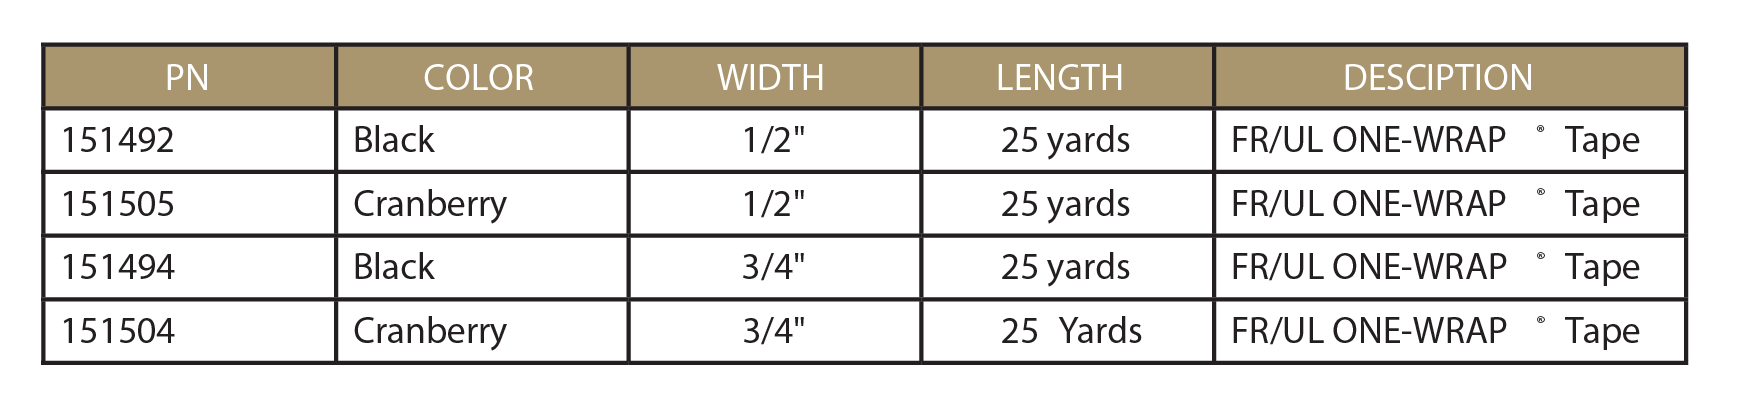 Lineal Tape offering table